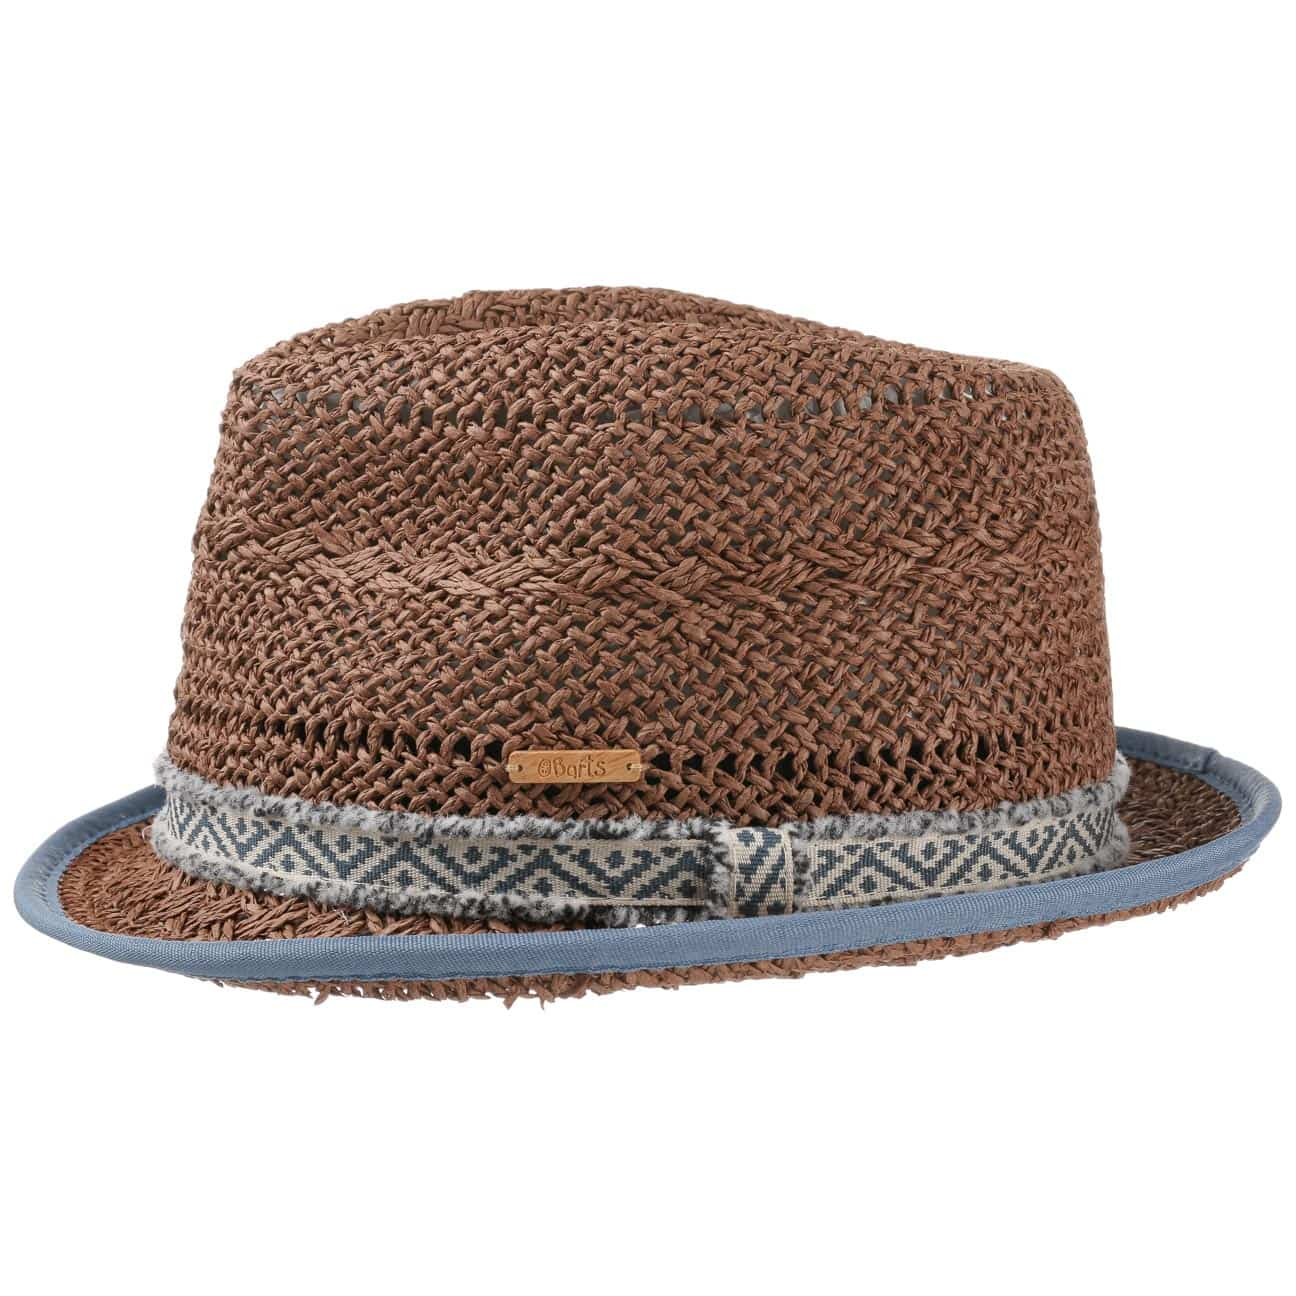 Trilby hats are worn differently than fedora hats. A trilby is worn back on the head much farther. It sits at an angle pointing up over the backside of the head. A fedora is worn straight or flat across the brown and back of head perpendicular to the neck.